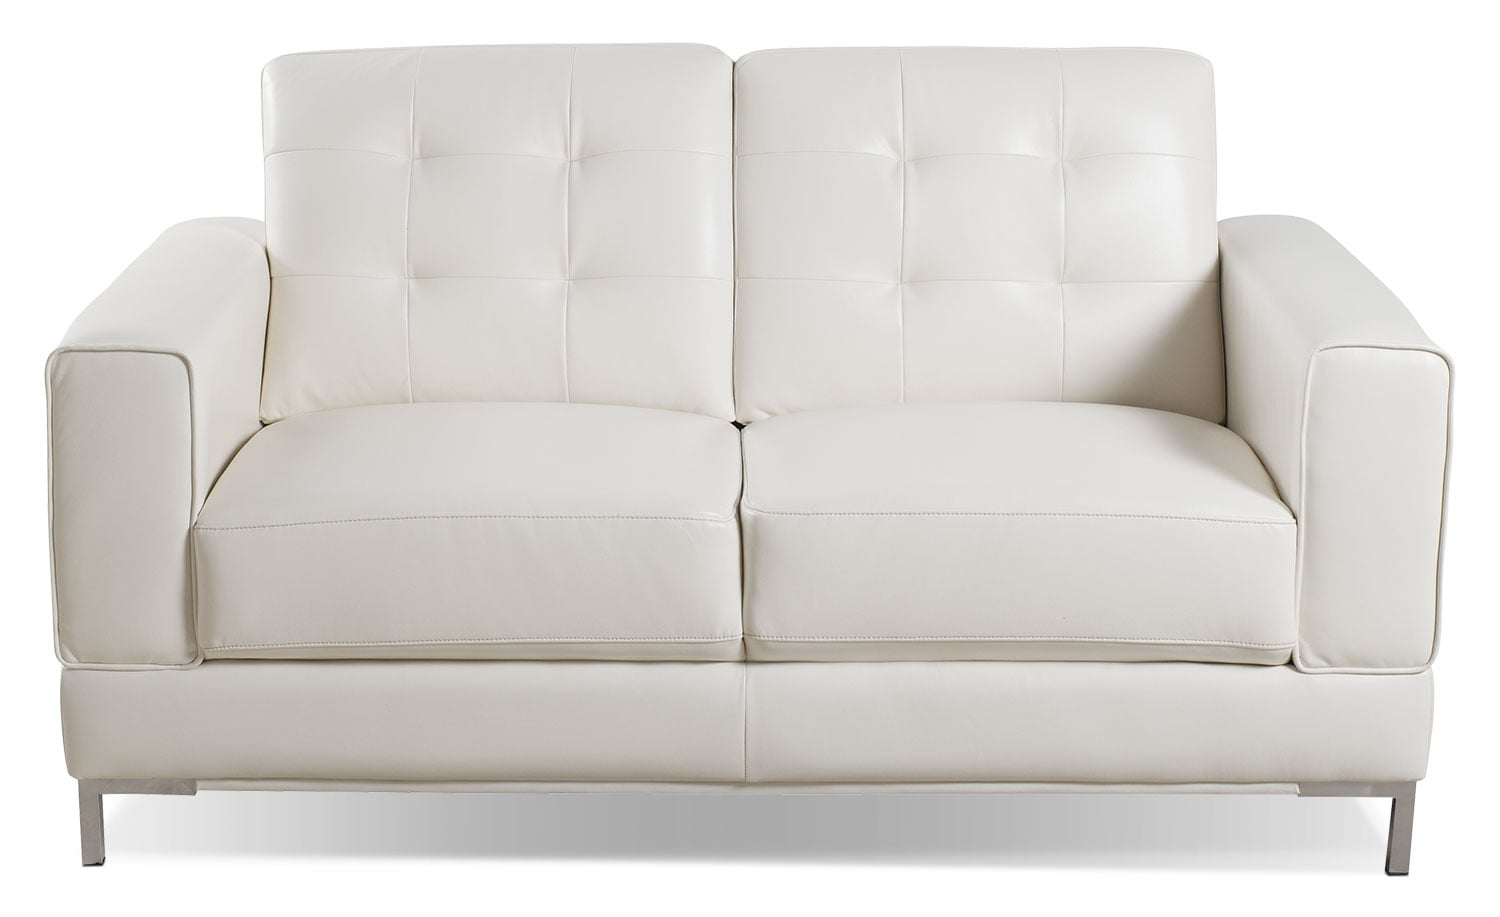 Myer Leather-Look Fabric Loveseat - Cream